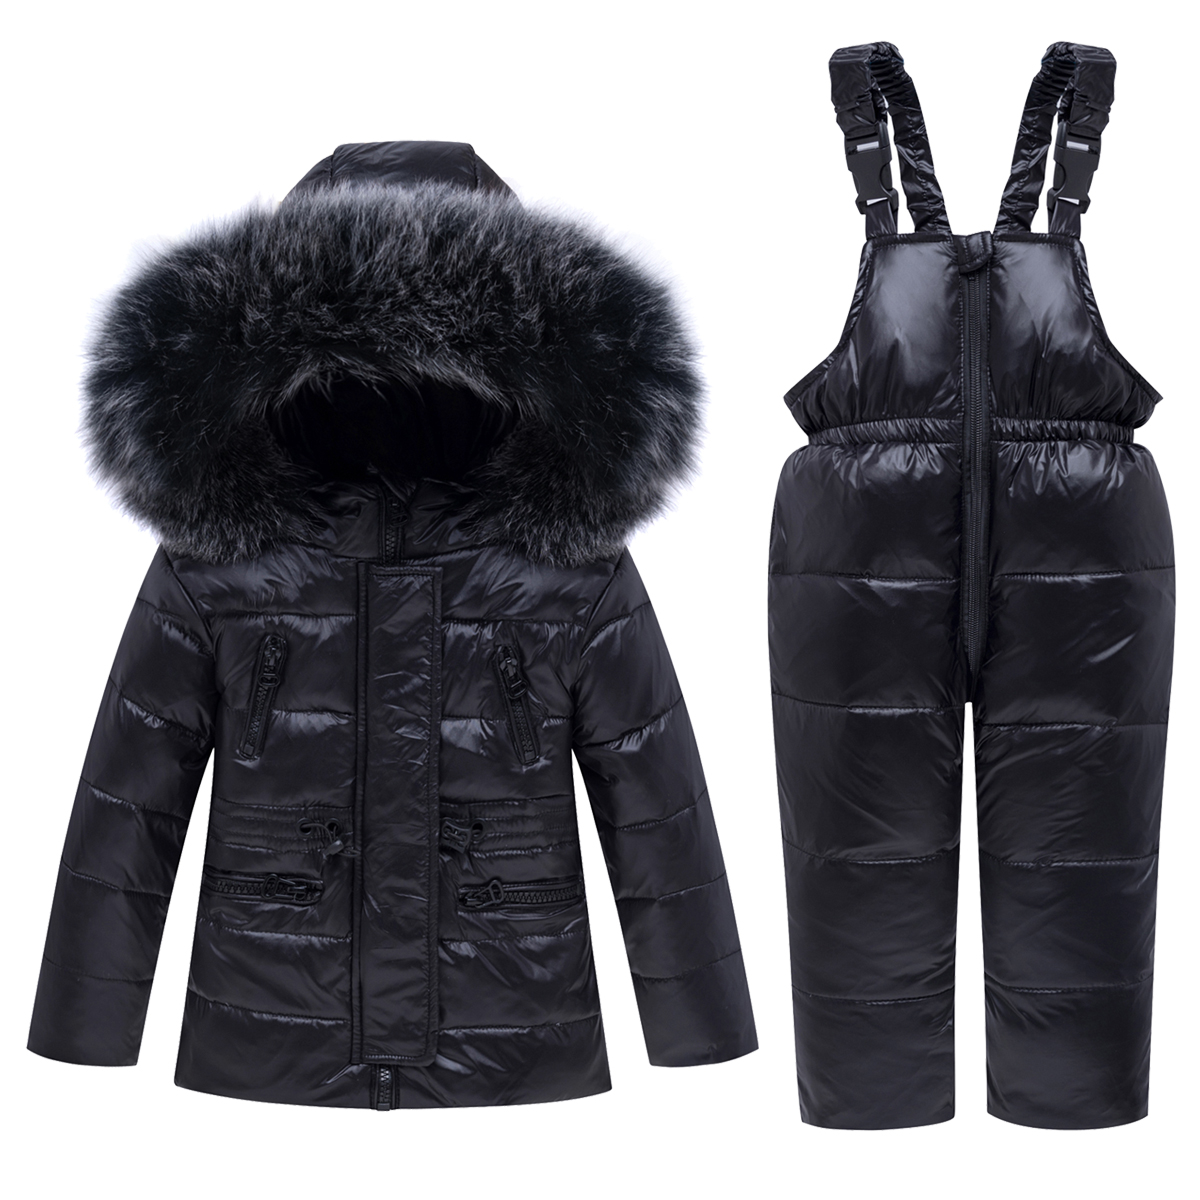 OLEKID  30 Degrees Kids Winter Jacket Fur Collar Down Jackat For Girl 1 5 Years Baby Boy Clothes Children Coat Overalls Snowsuit|Down & Parkas| |  - title=